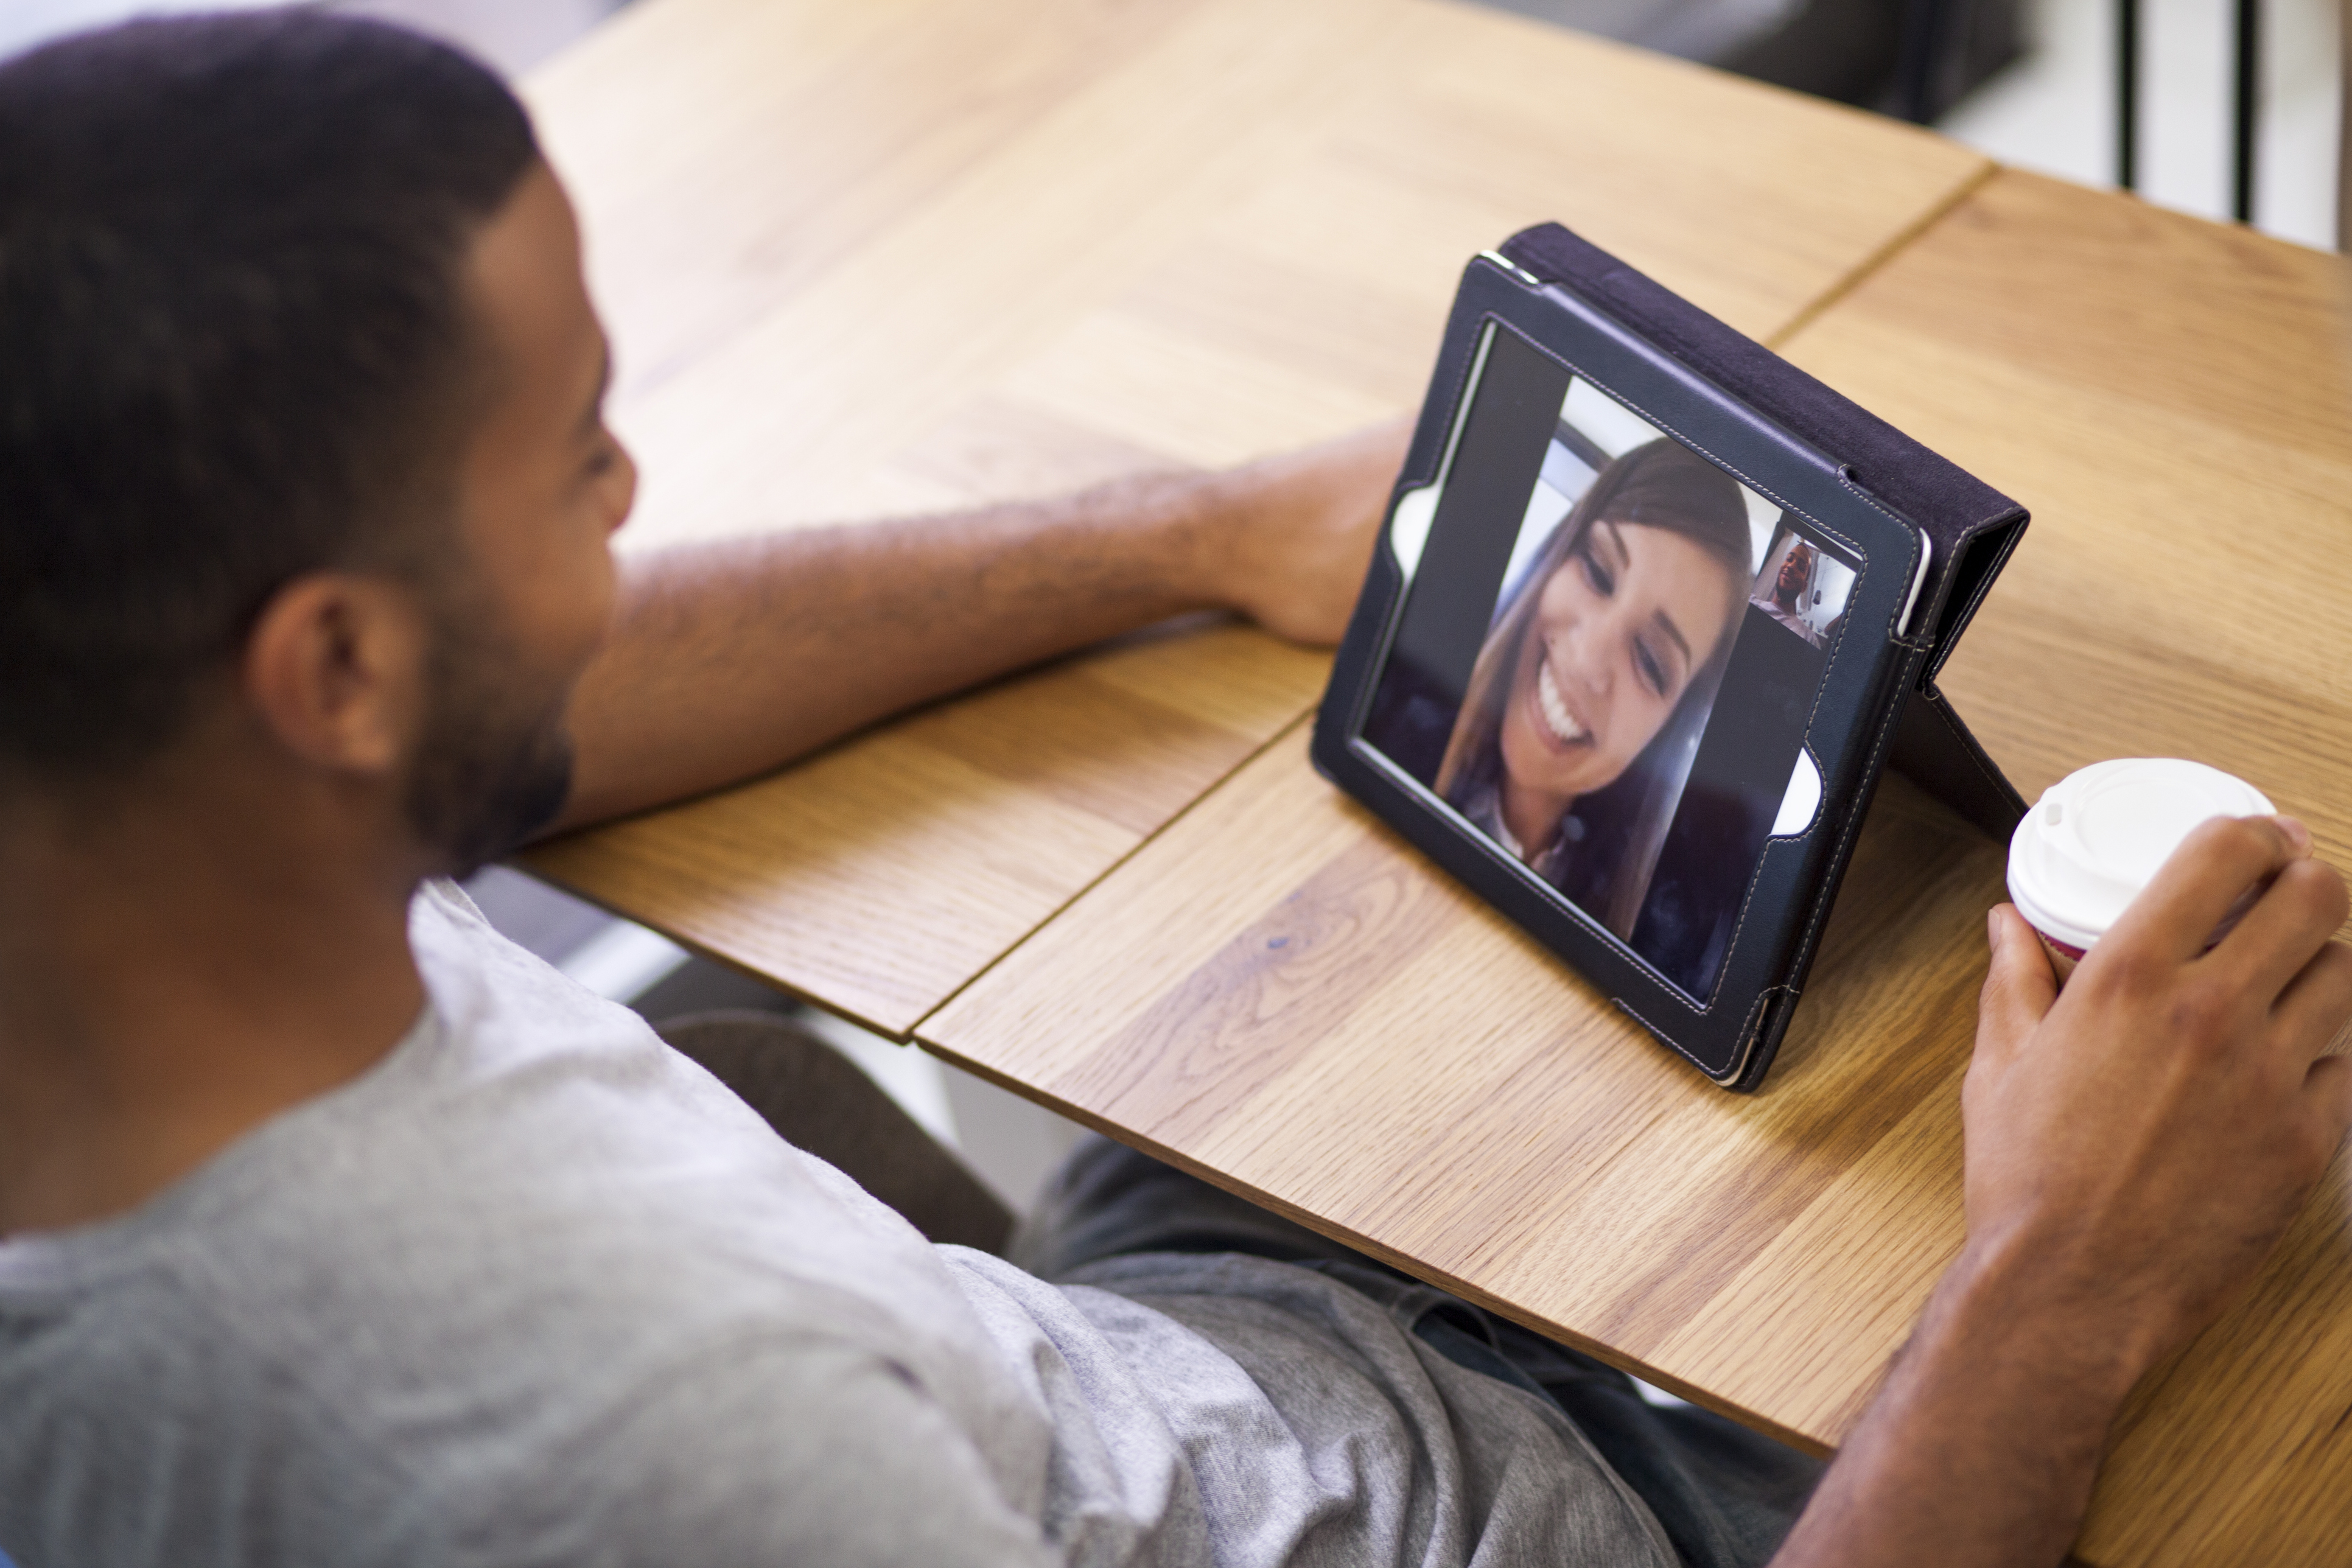 Is Online Dating Definitely One Of The Best Ways To Meet People?